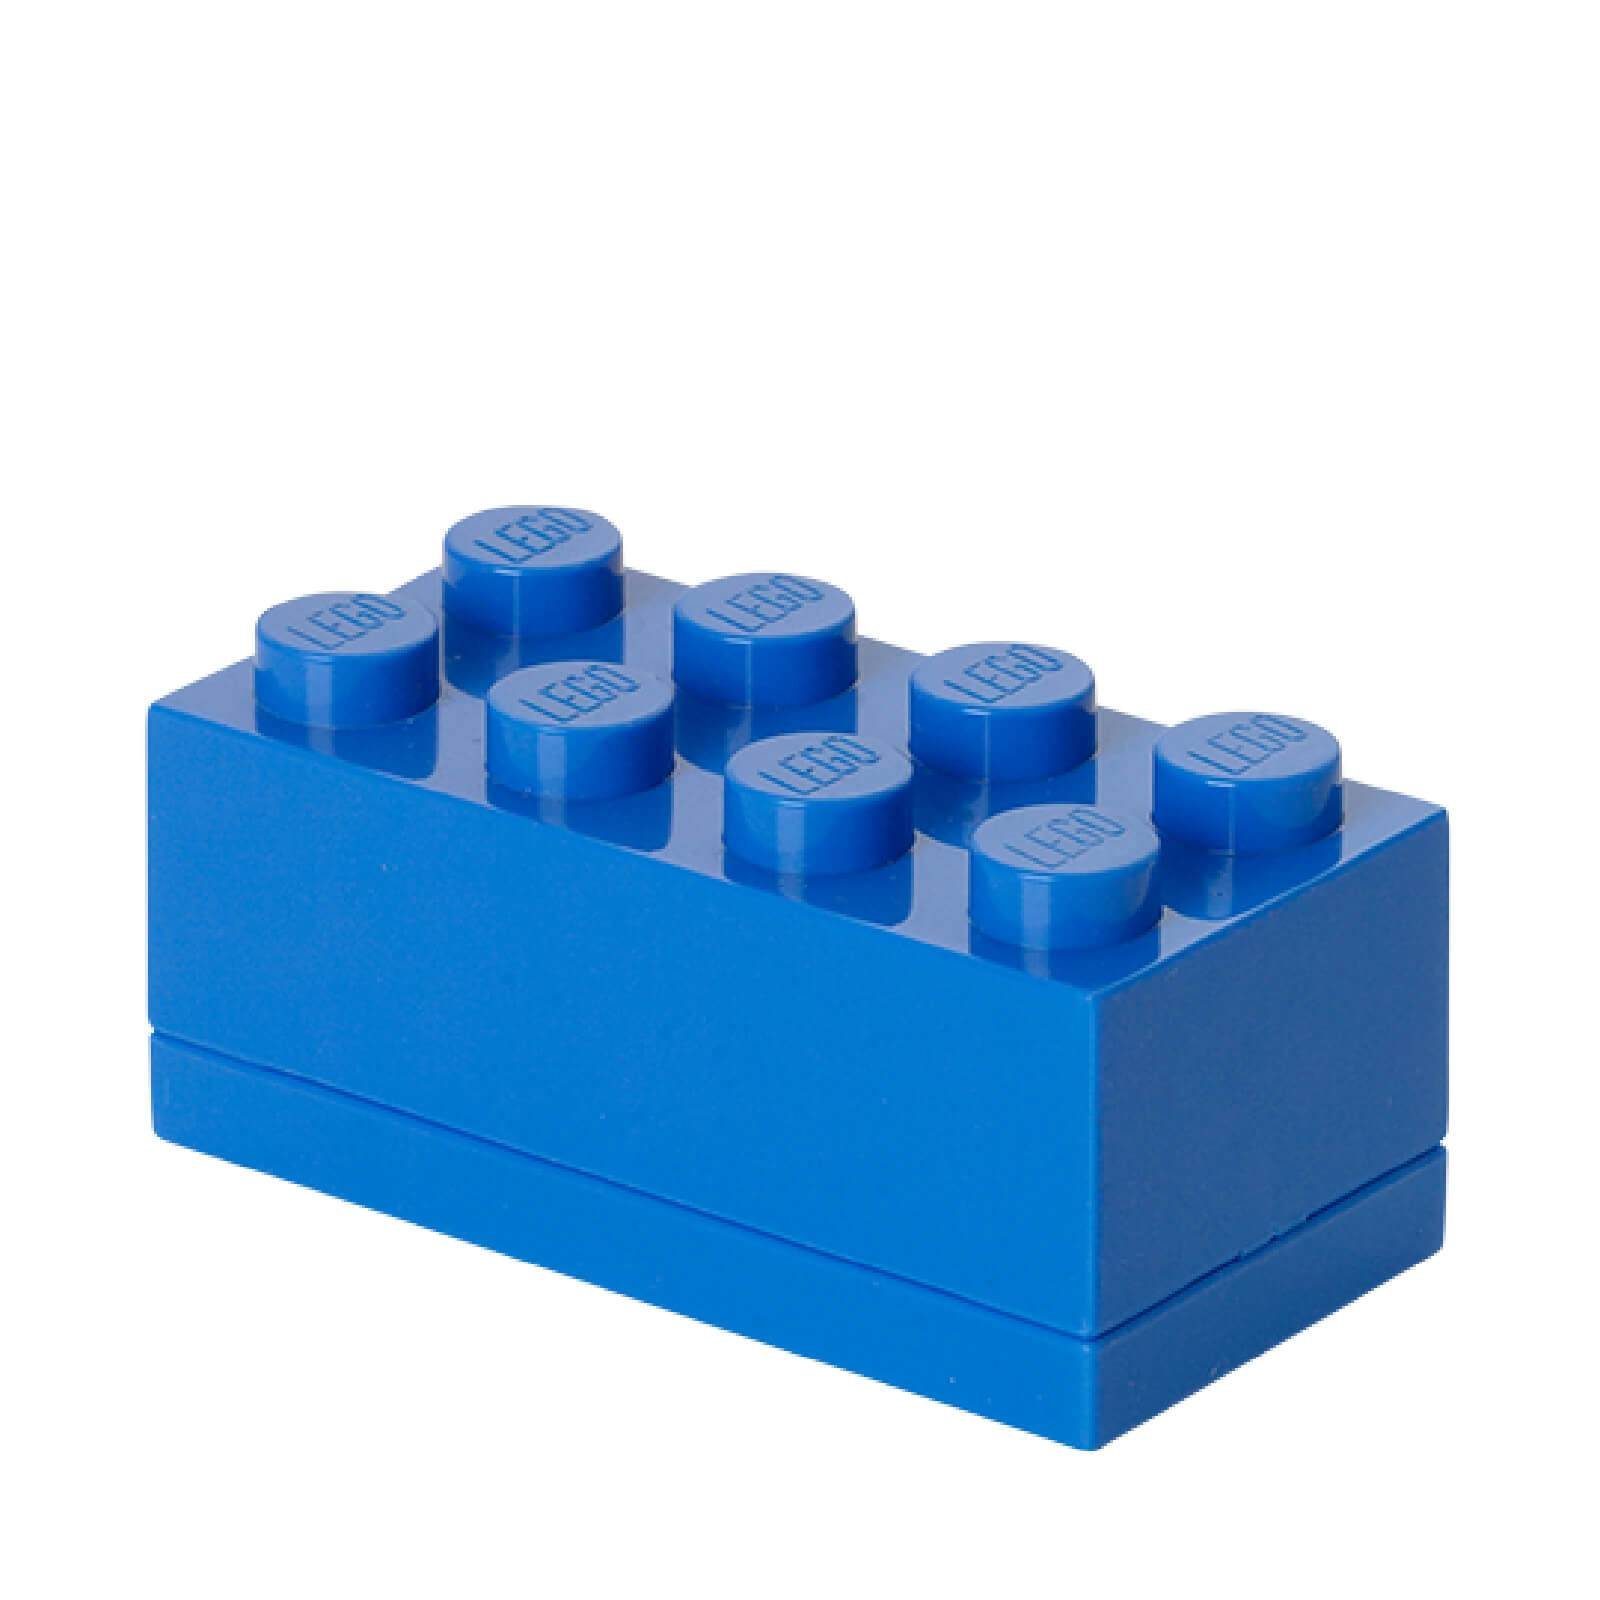 Lego Mini Box 8 - Bright Blue